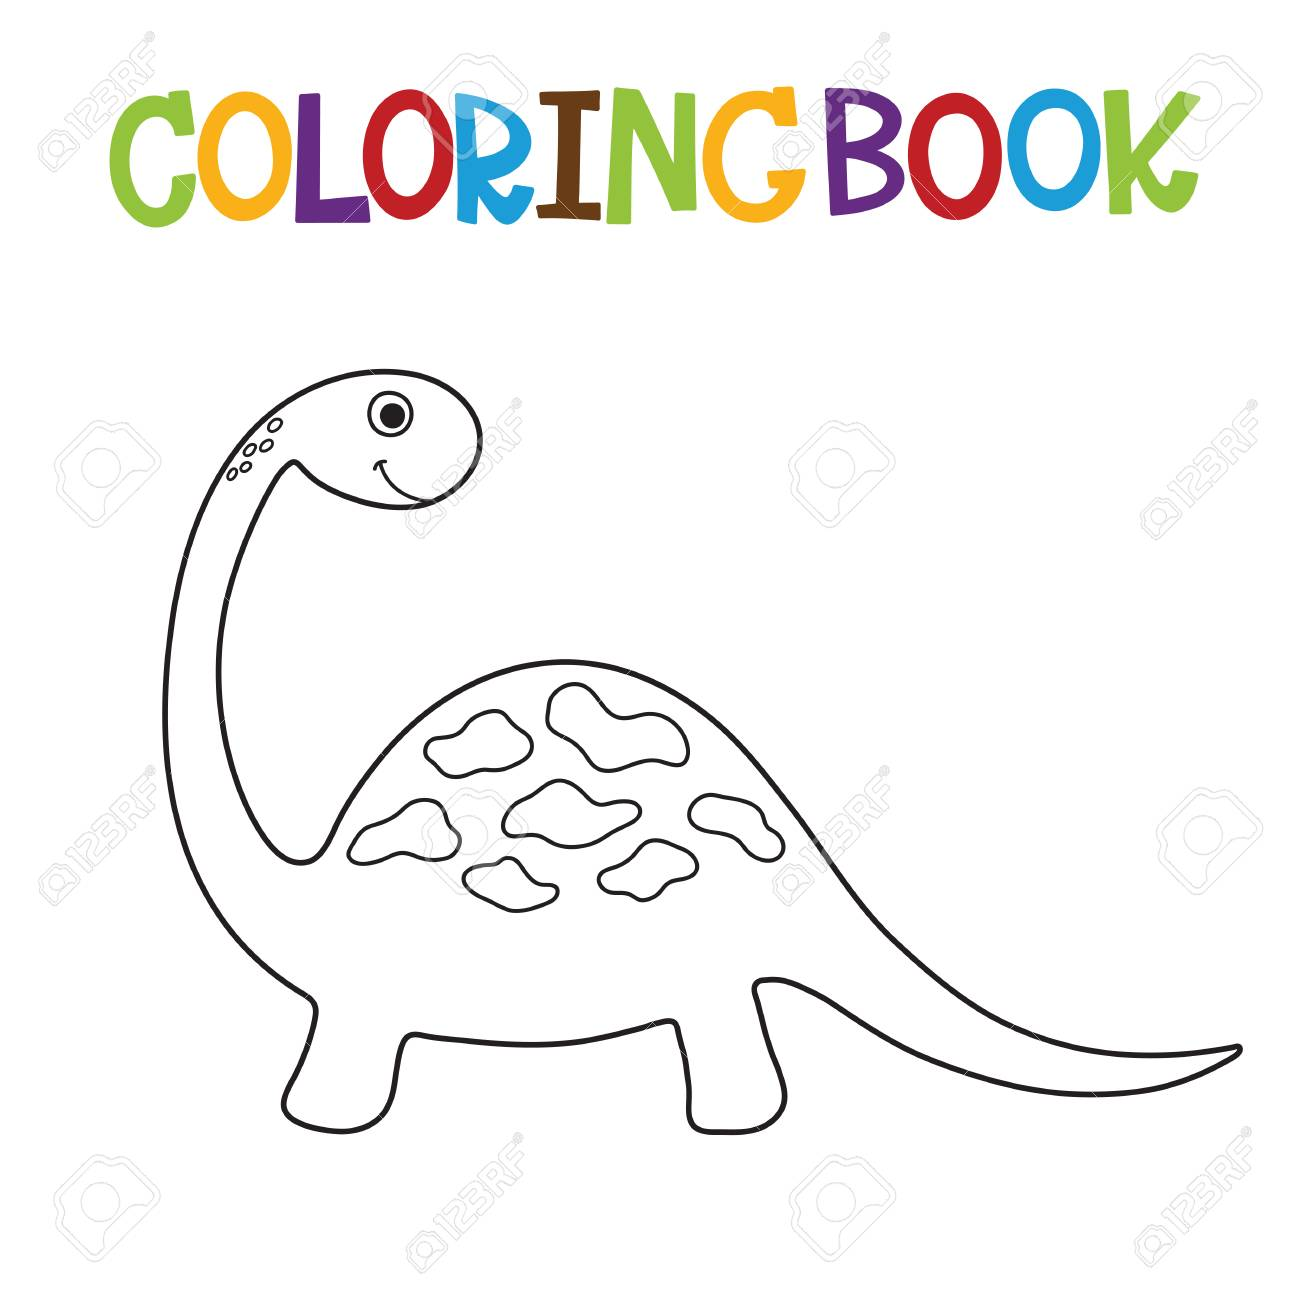 Cute Dino Coloring Book Vector Illustration Stock